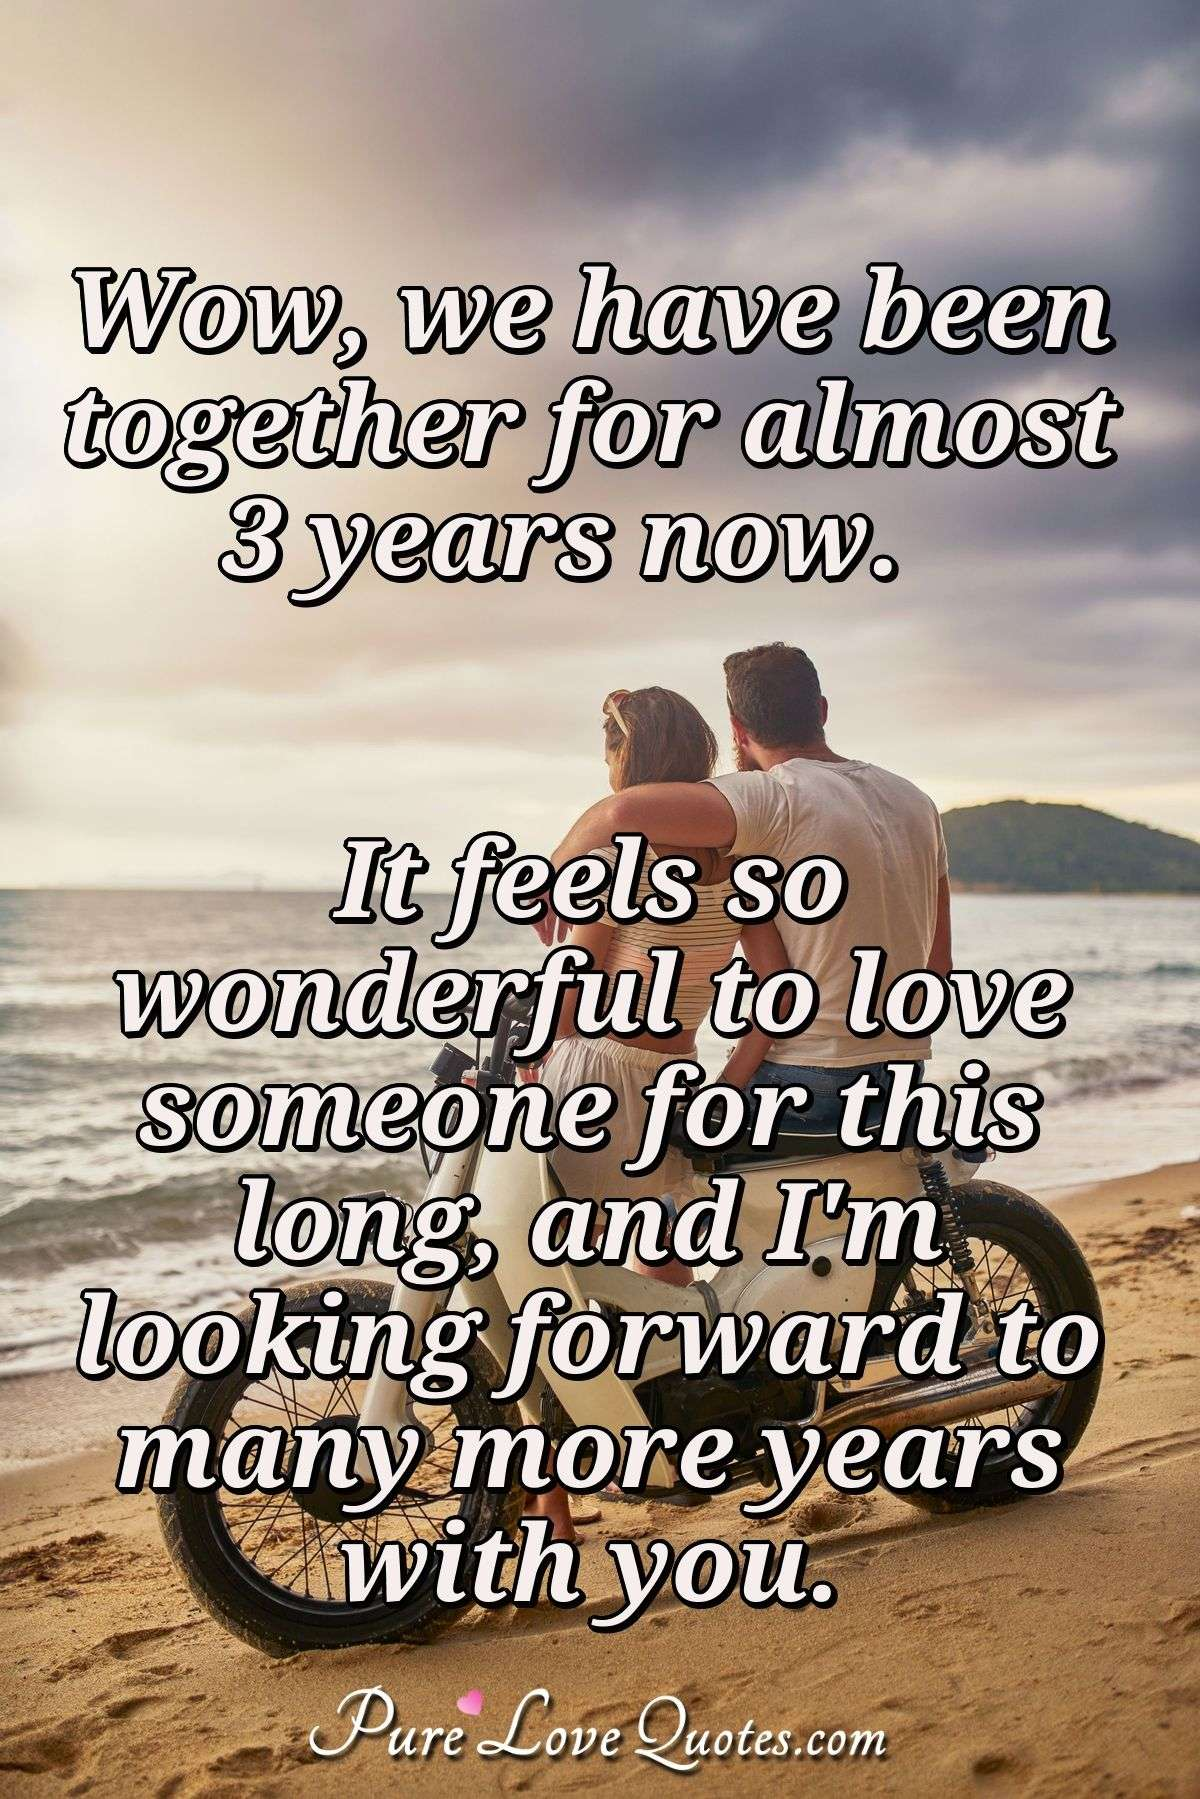 Wow, we have been together for almost 3 years now. It